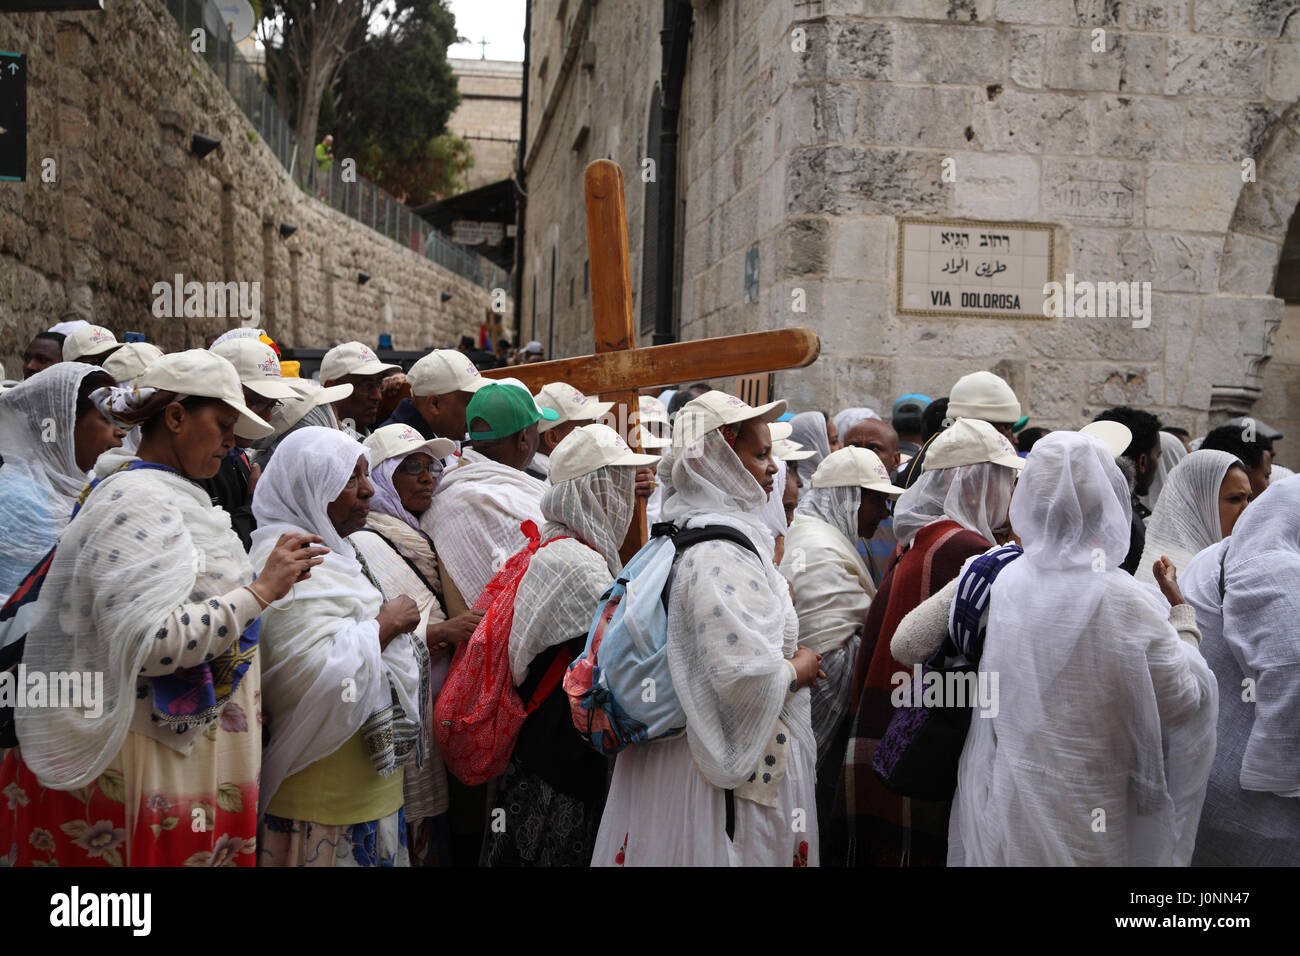 A Good Friday Procession on the Via Dolorosa, Ethiopian Christian pilgrims, carry a simple wooden Cross. - Stock Image